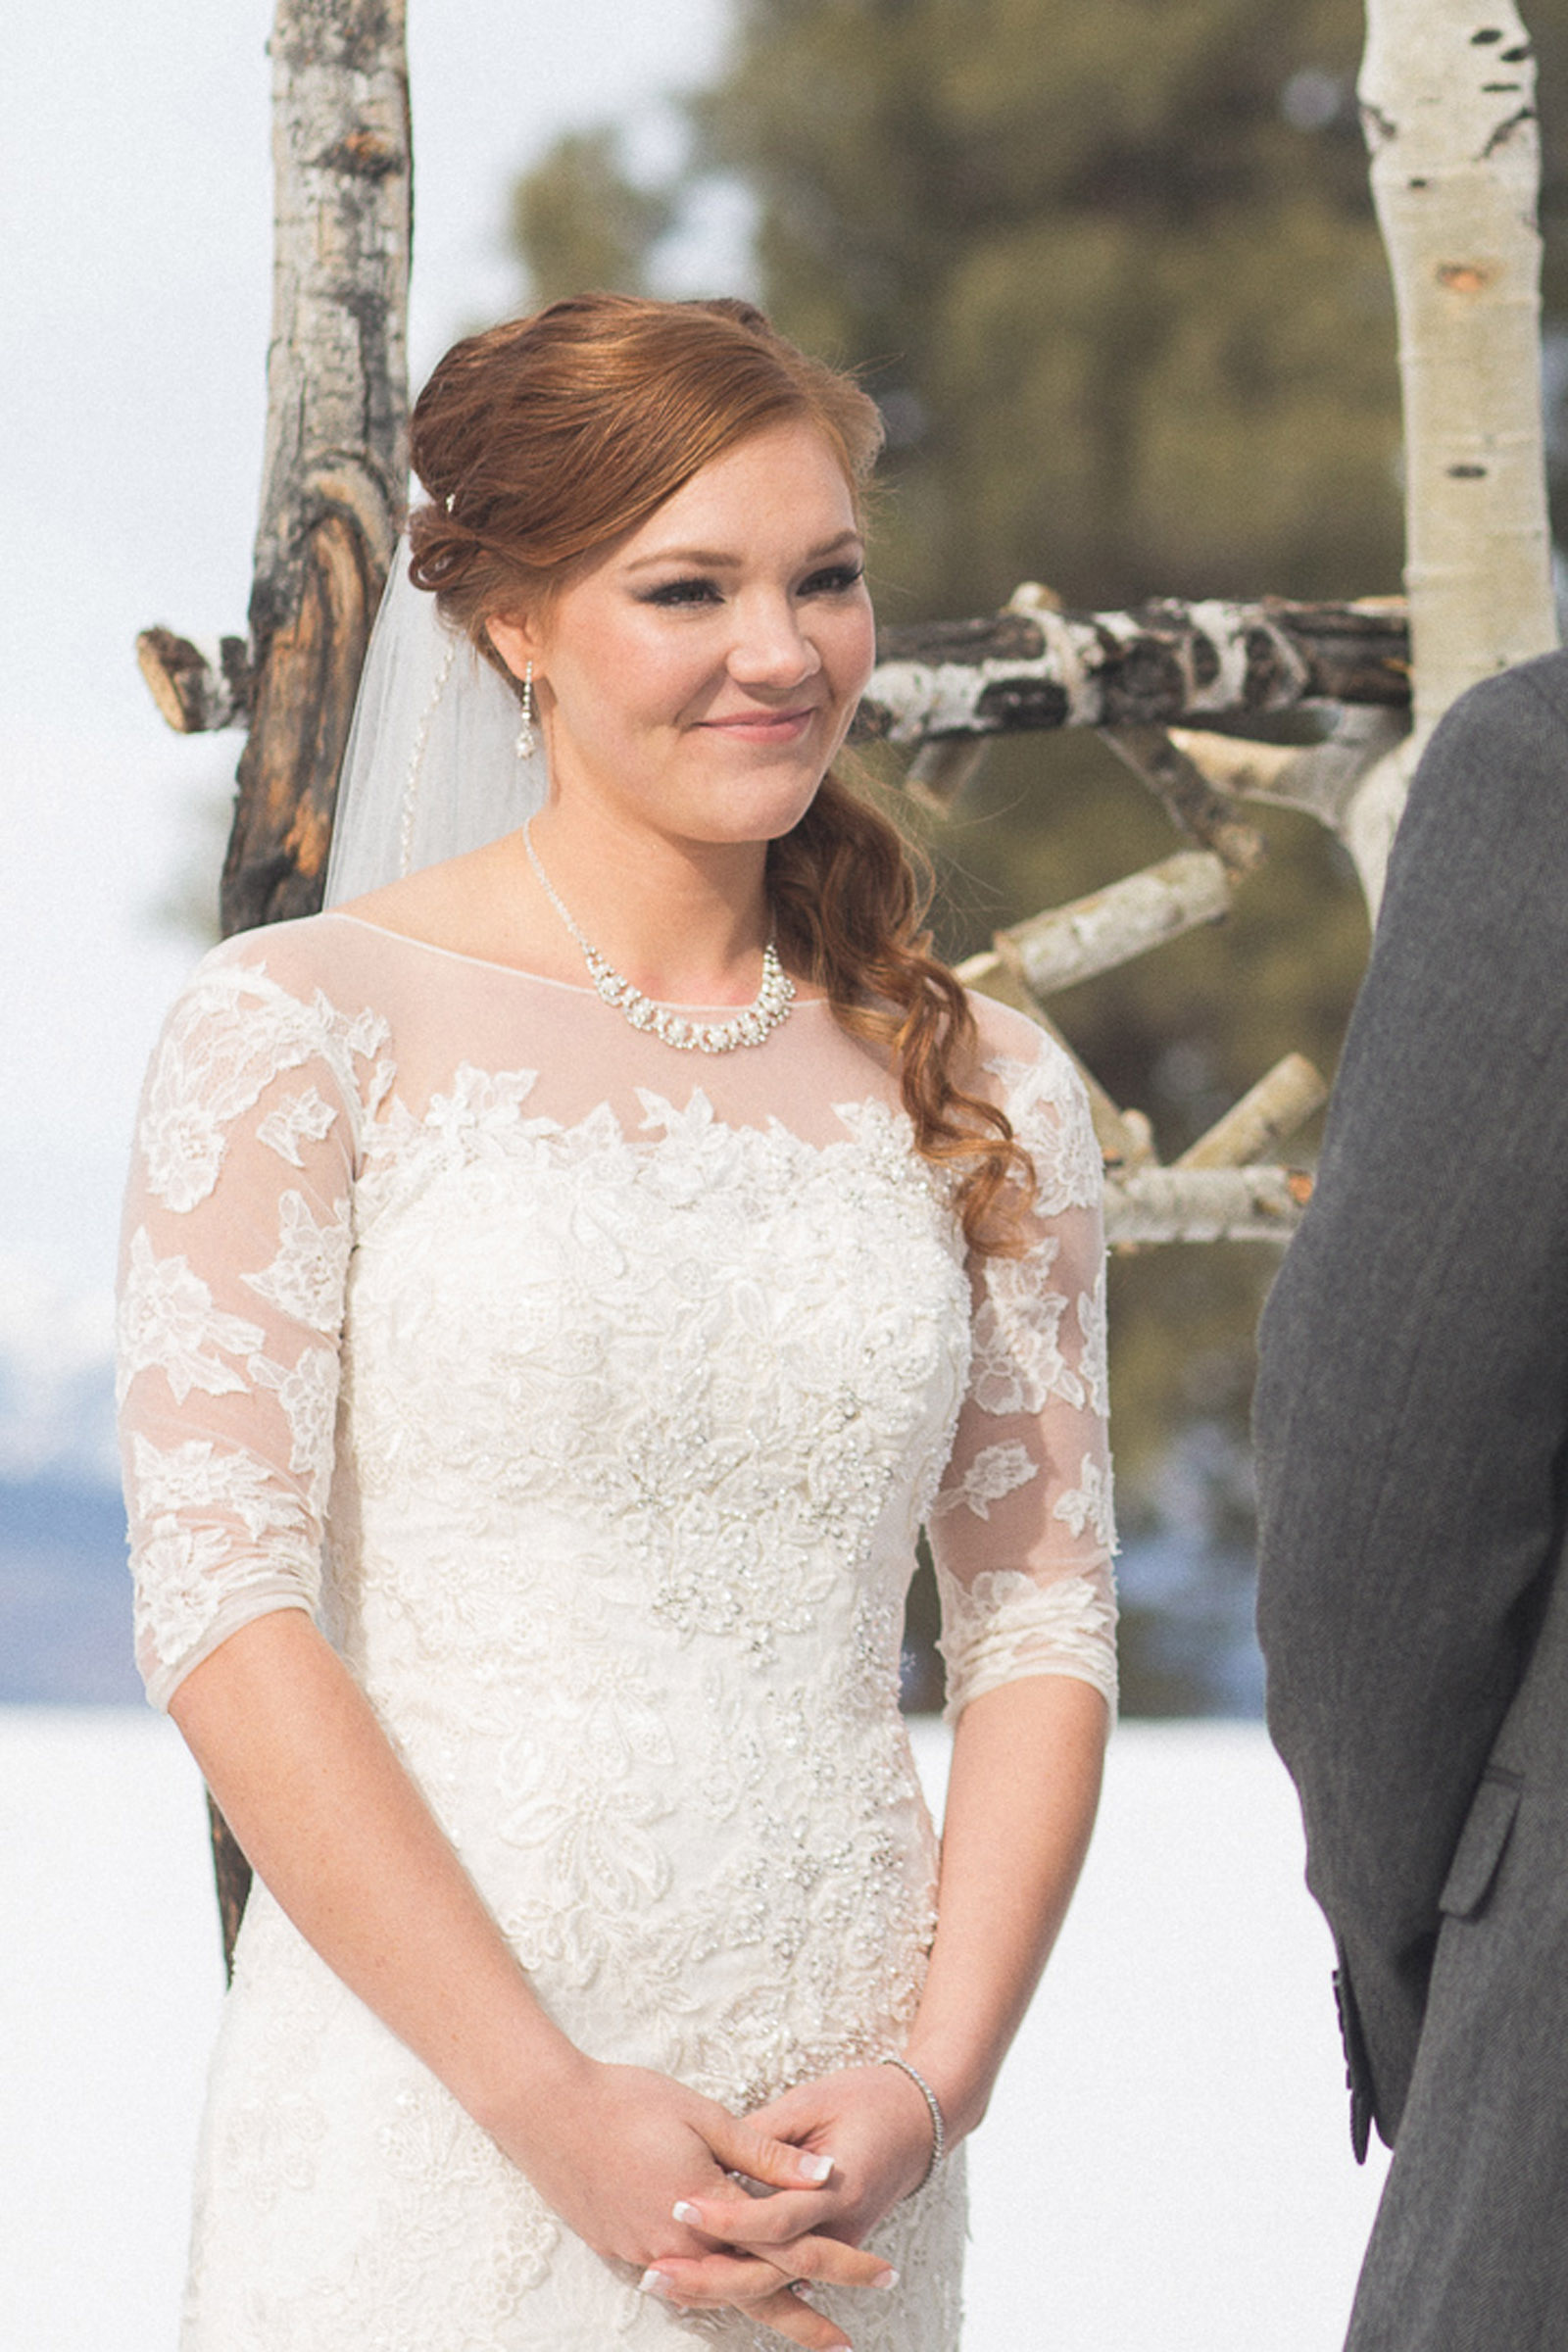 111-wedding-ceremony-in-pagosa-springs-wedding-photographer-snow-winter-wedding